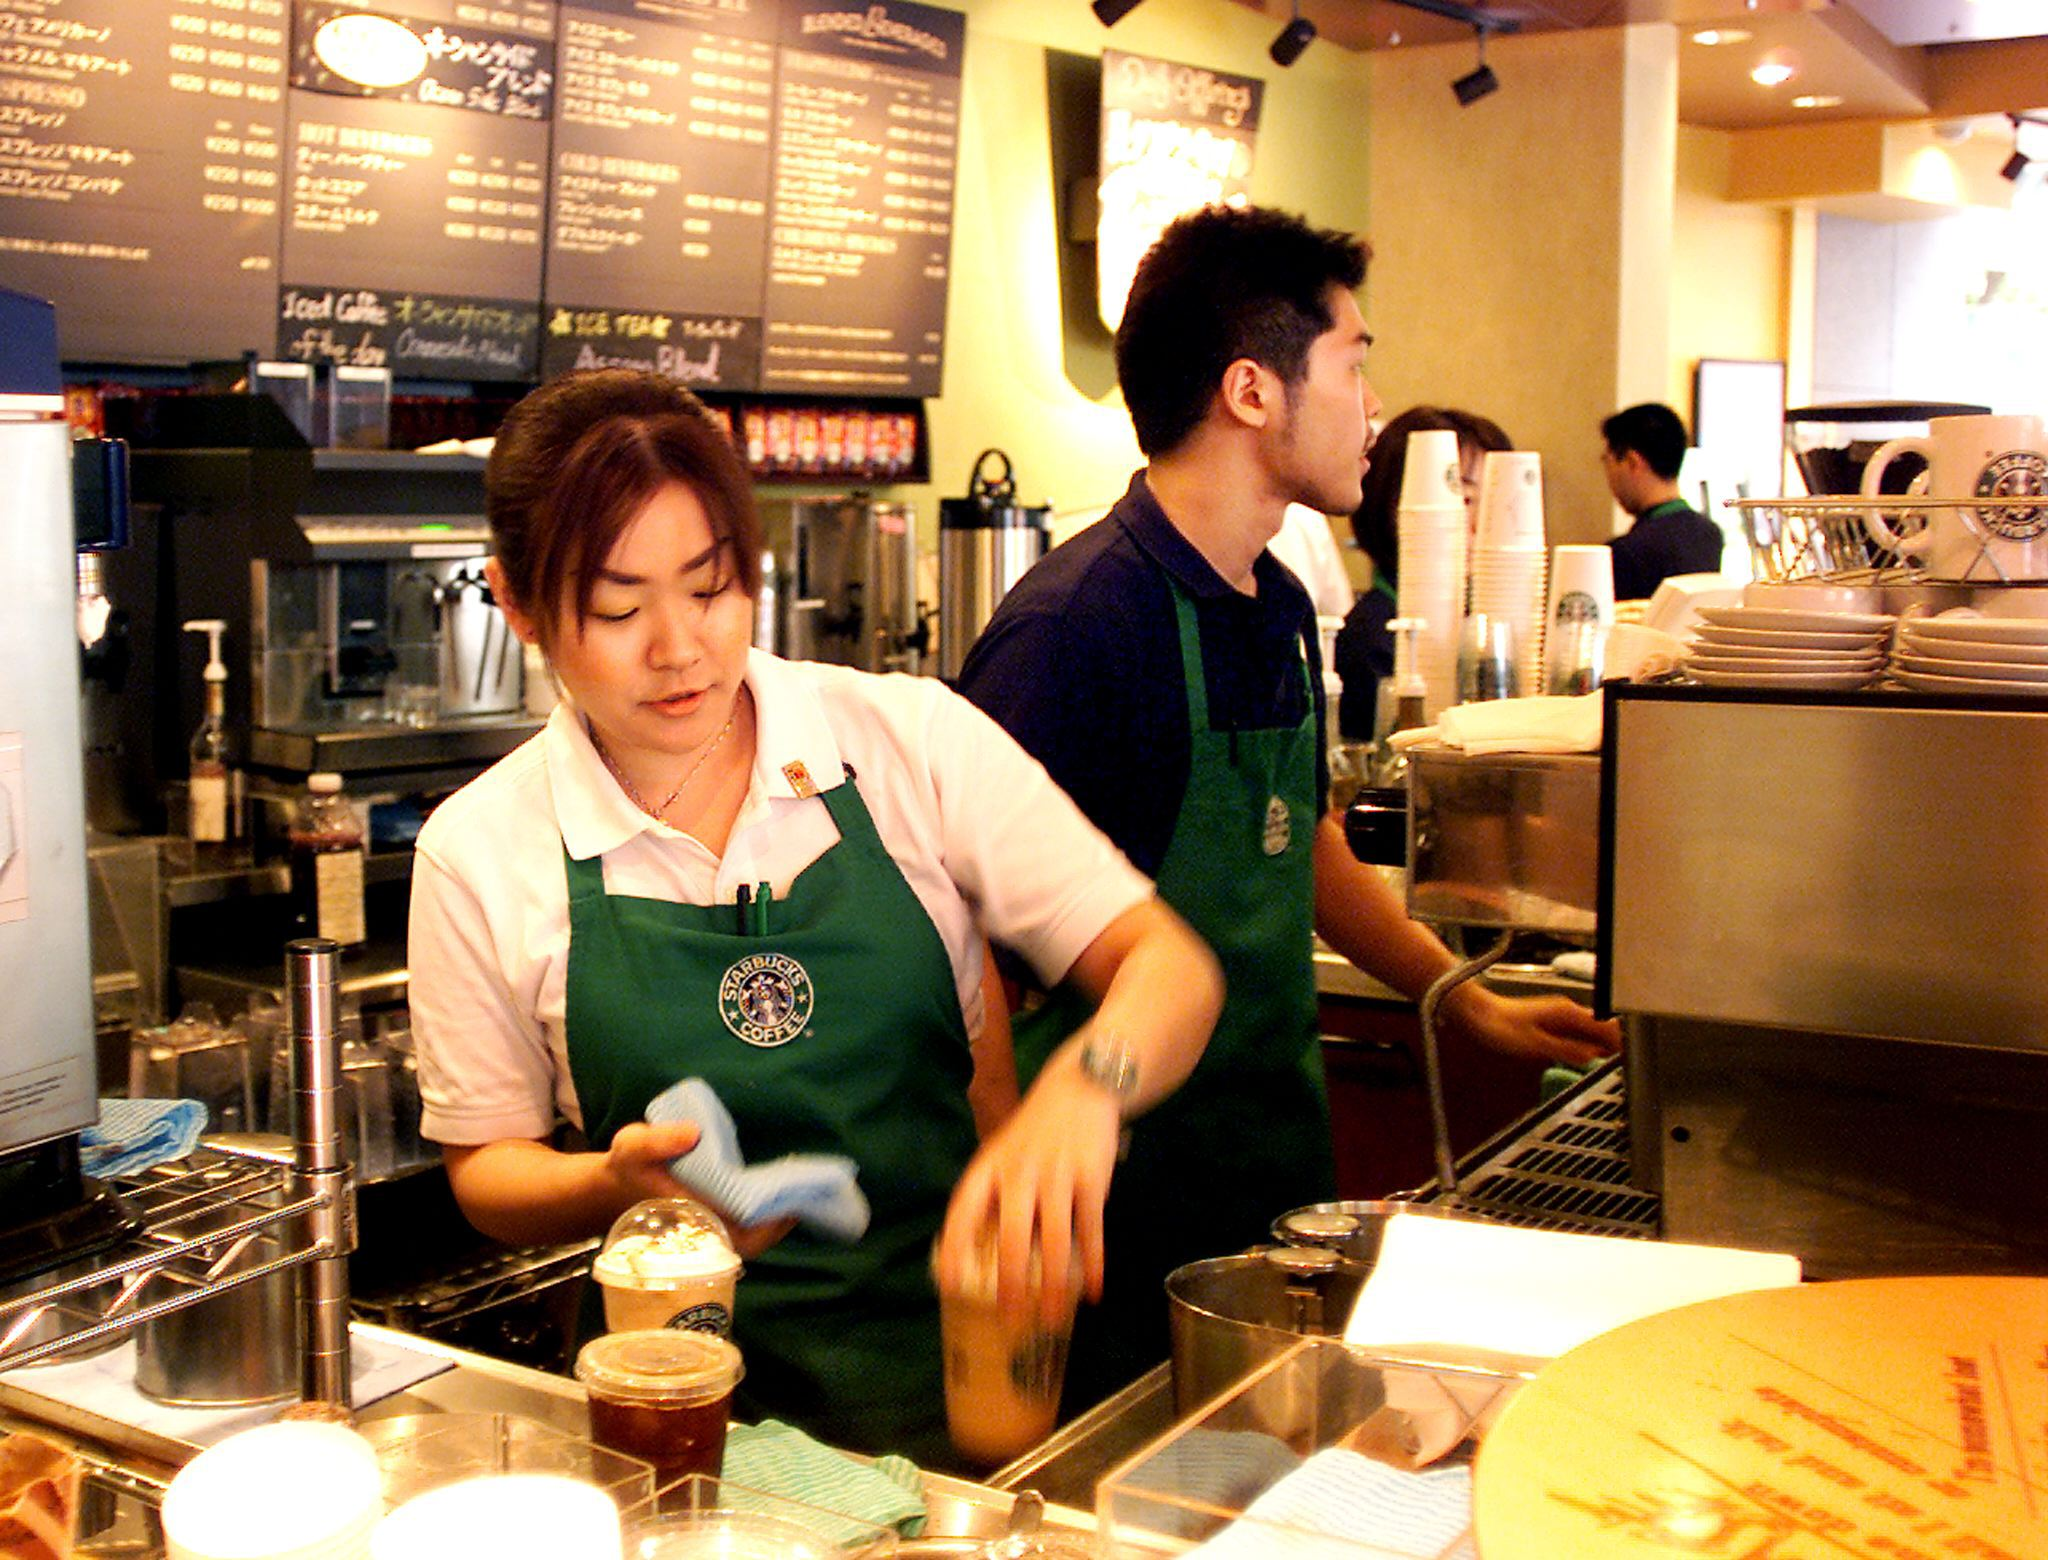 What do the Starbucks apron colors mean